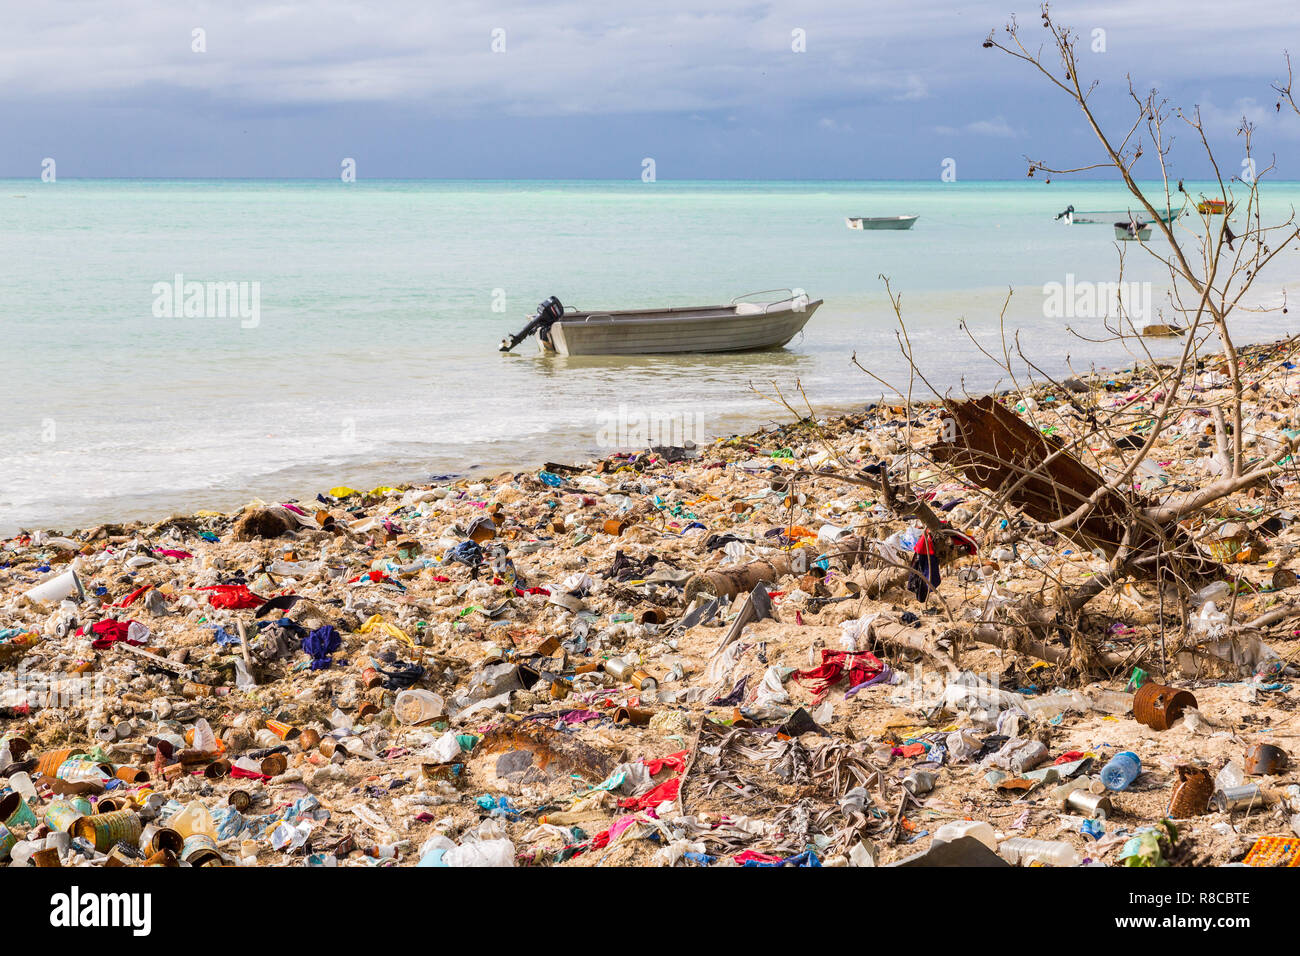 Garbage dump, landfill, Micronesian atoll sand beach, South Tarawa, Kiribati, Oceania. Ecological and garbage management problems of island nations. - Stock Image